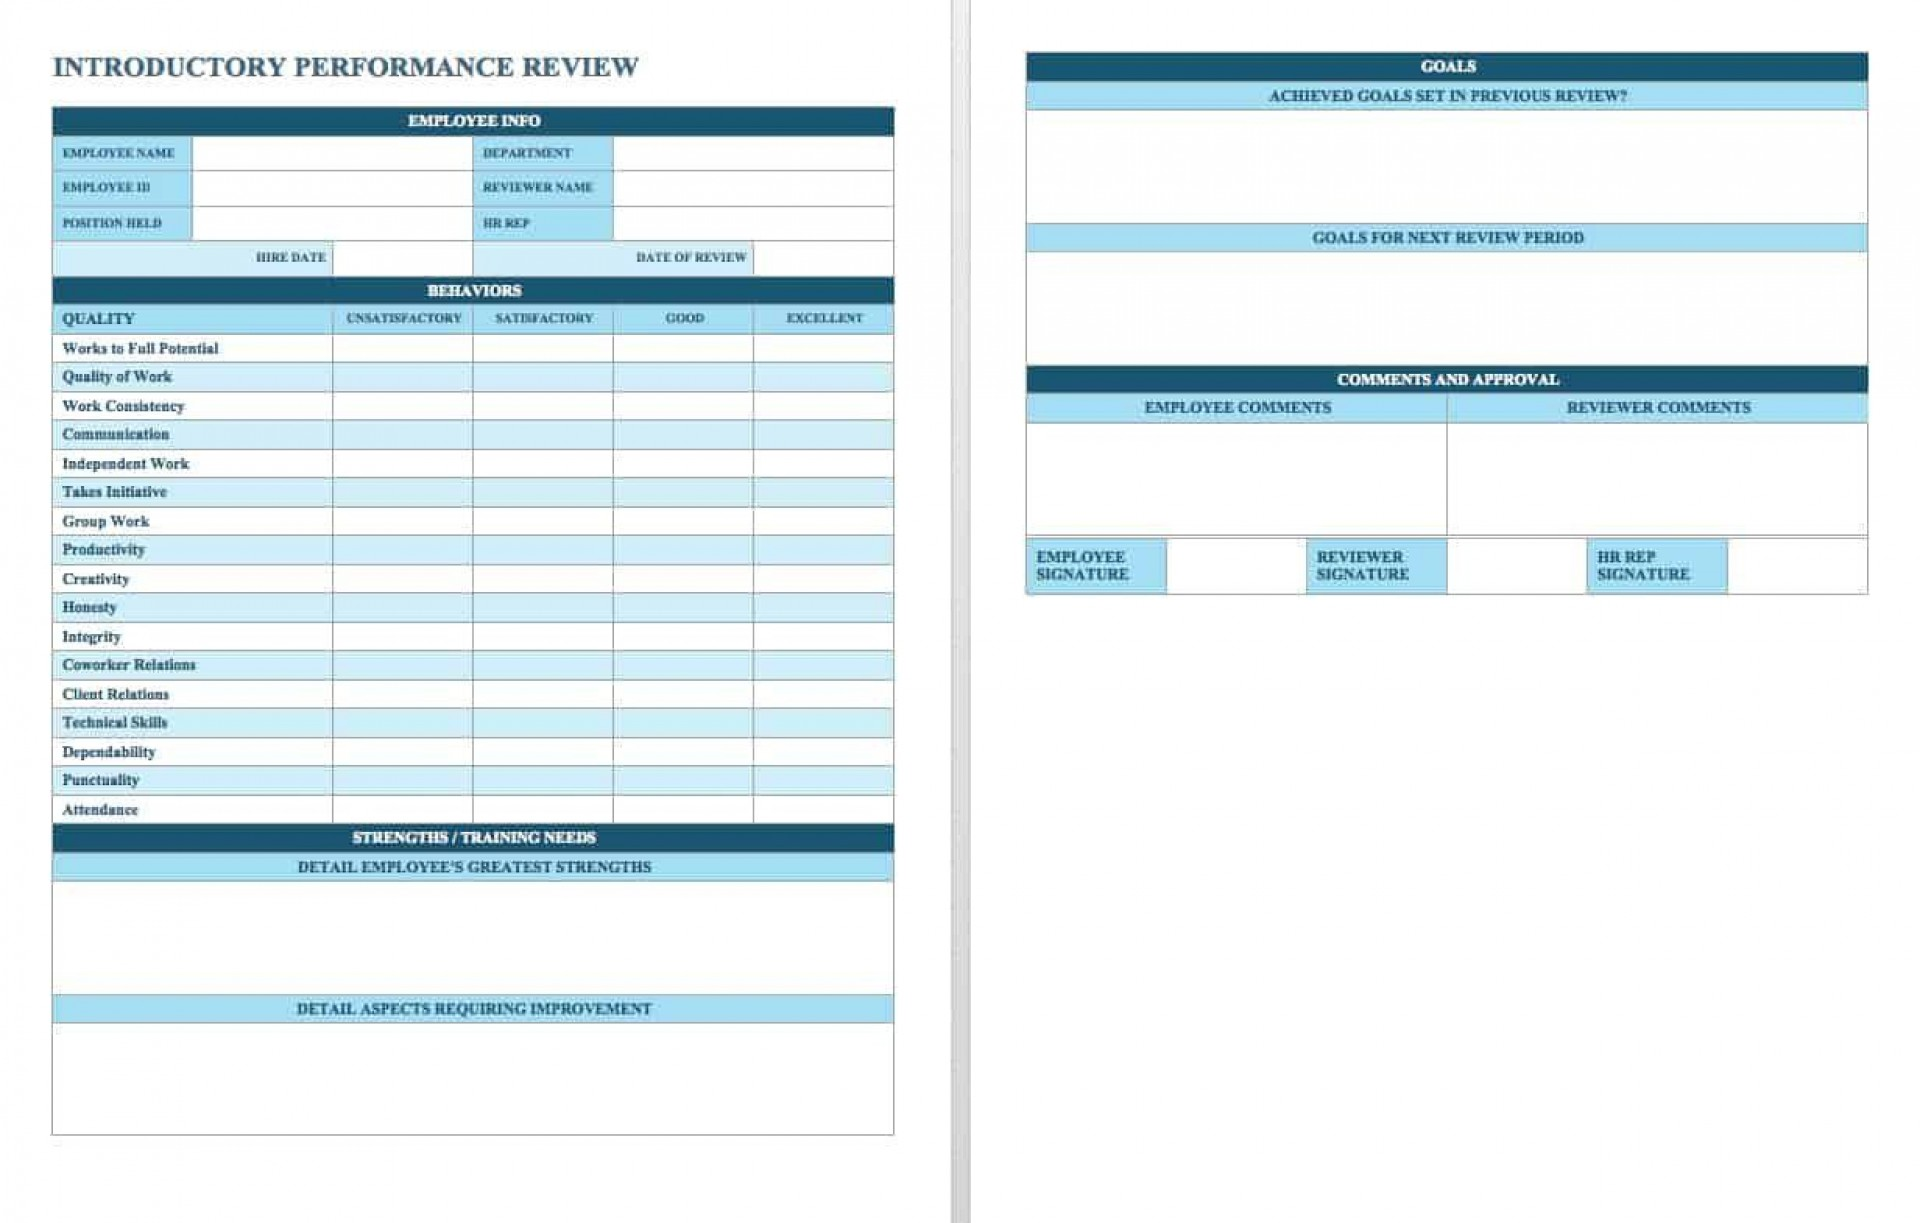 006 Marvelou Employee Performance Review Template Word Example  Microsoft Document1920